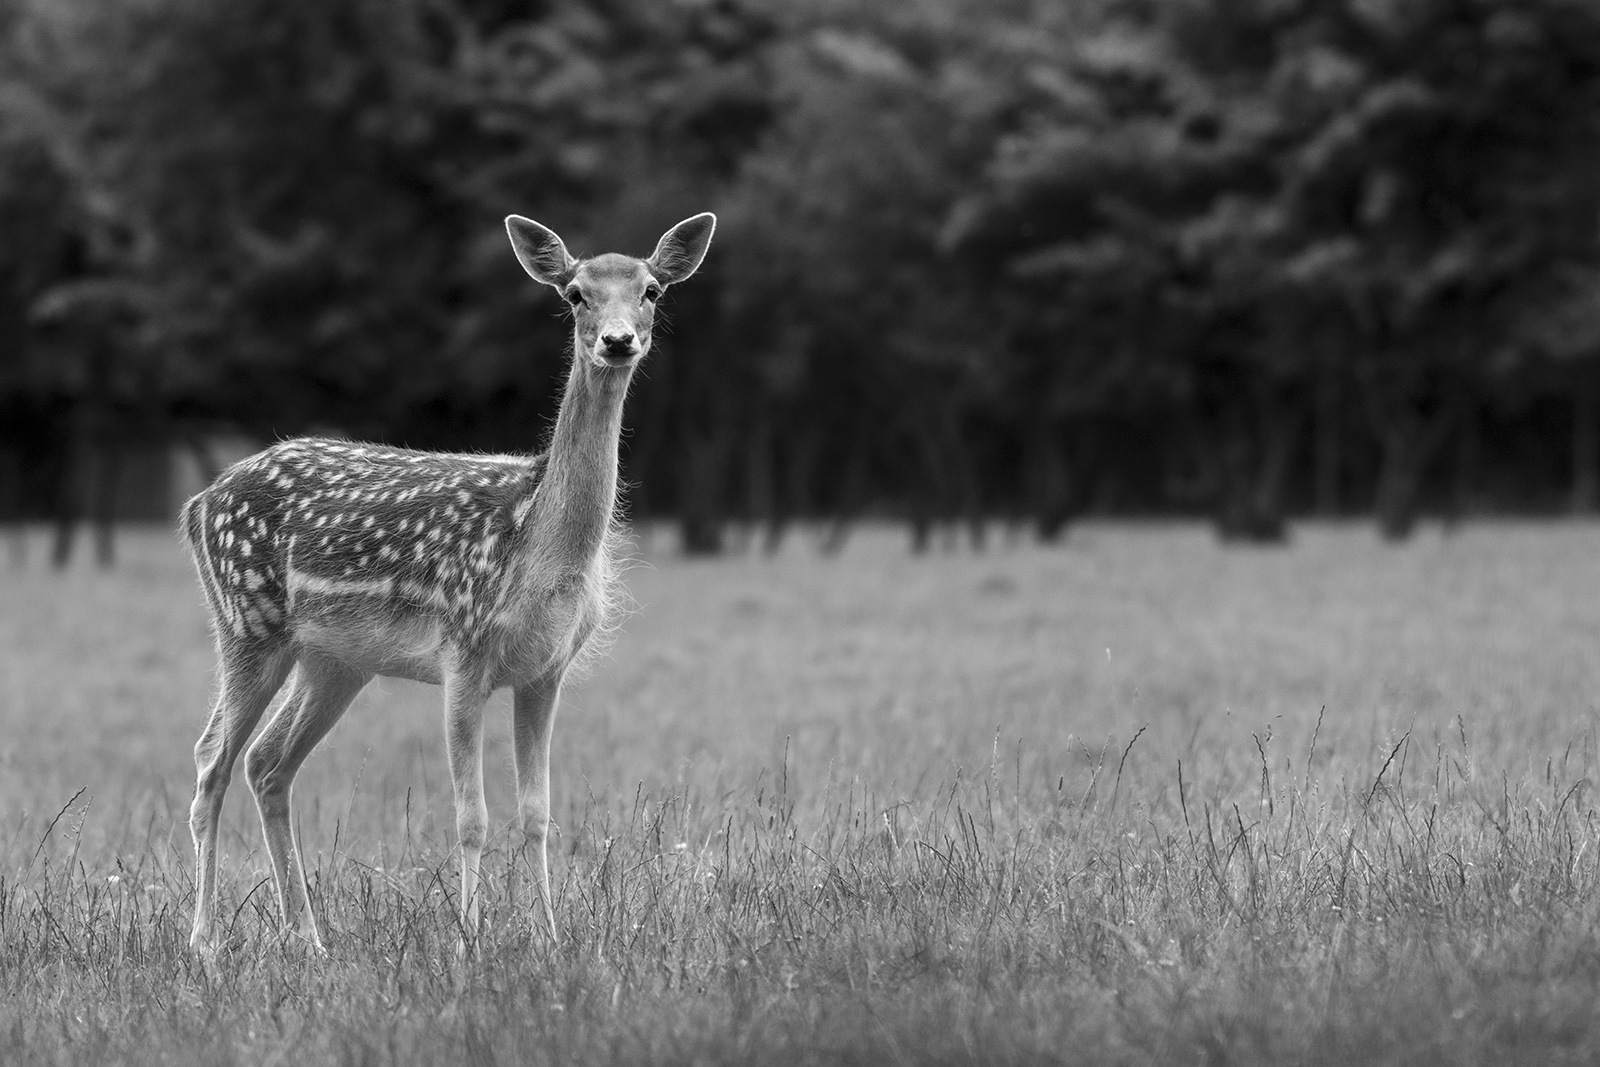 Fallow deer doe female in meadow grass, rural black and white wildlife photography Woodmancote West Sussex UK ©P. Maton 2019 eyeteeth.net